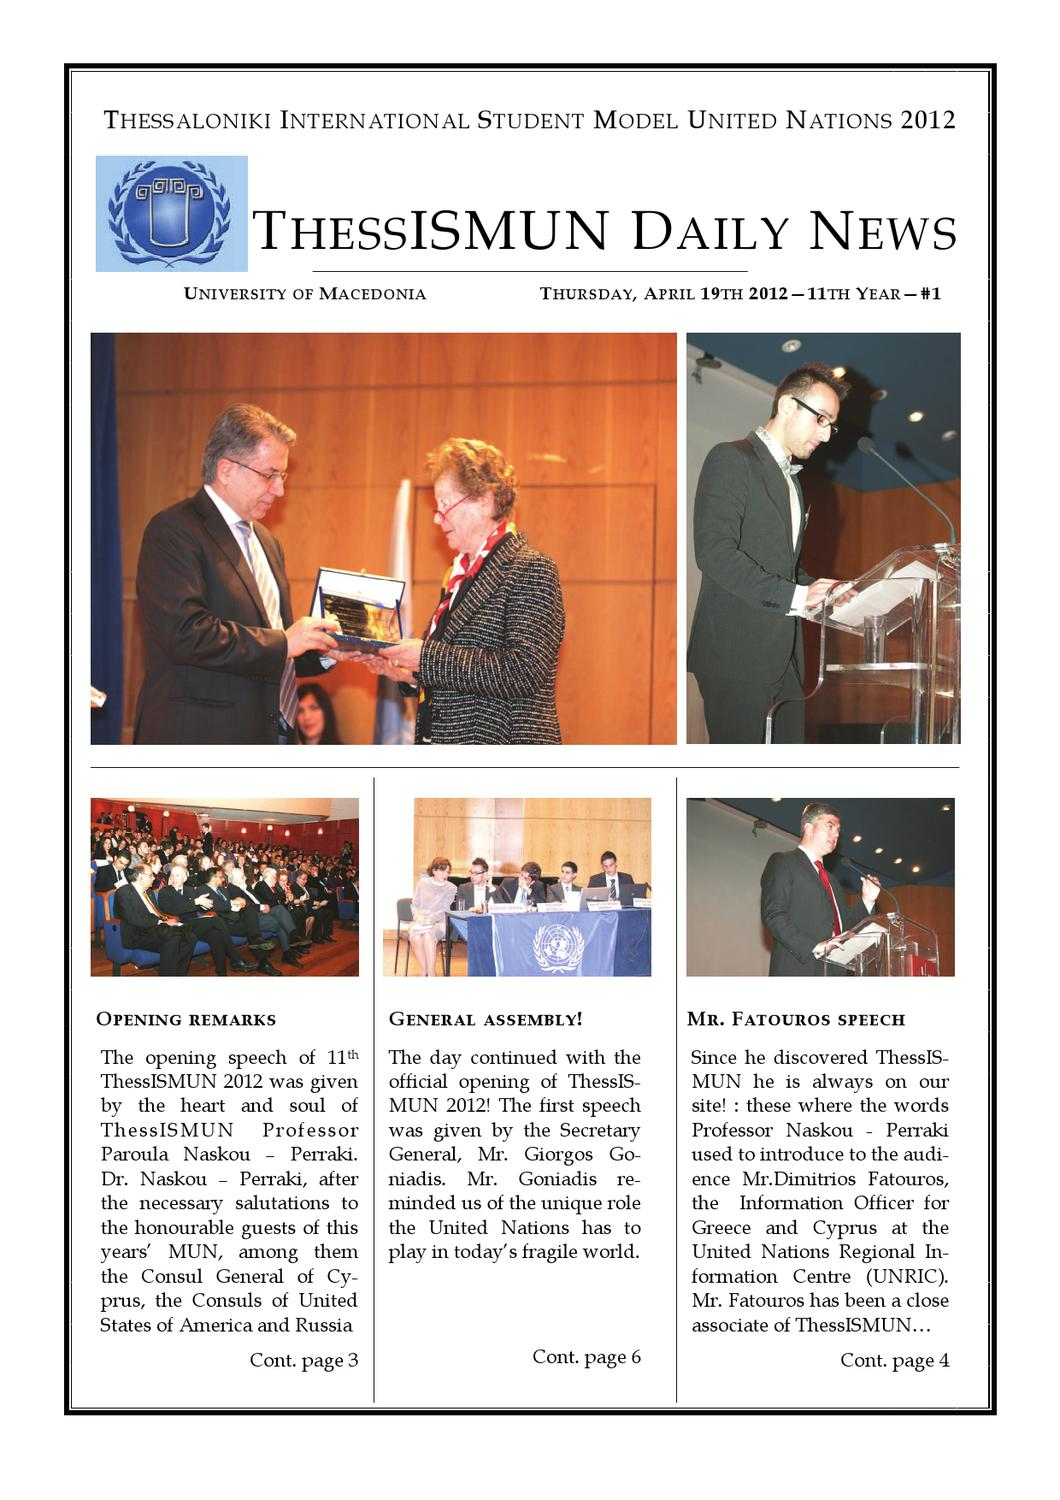 ThessISMUN Daily News Issue 1 by Stefanos Katsoulis - issuu